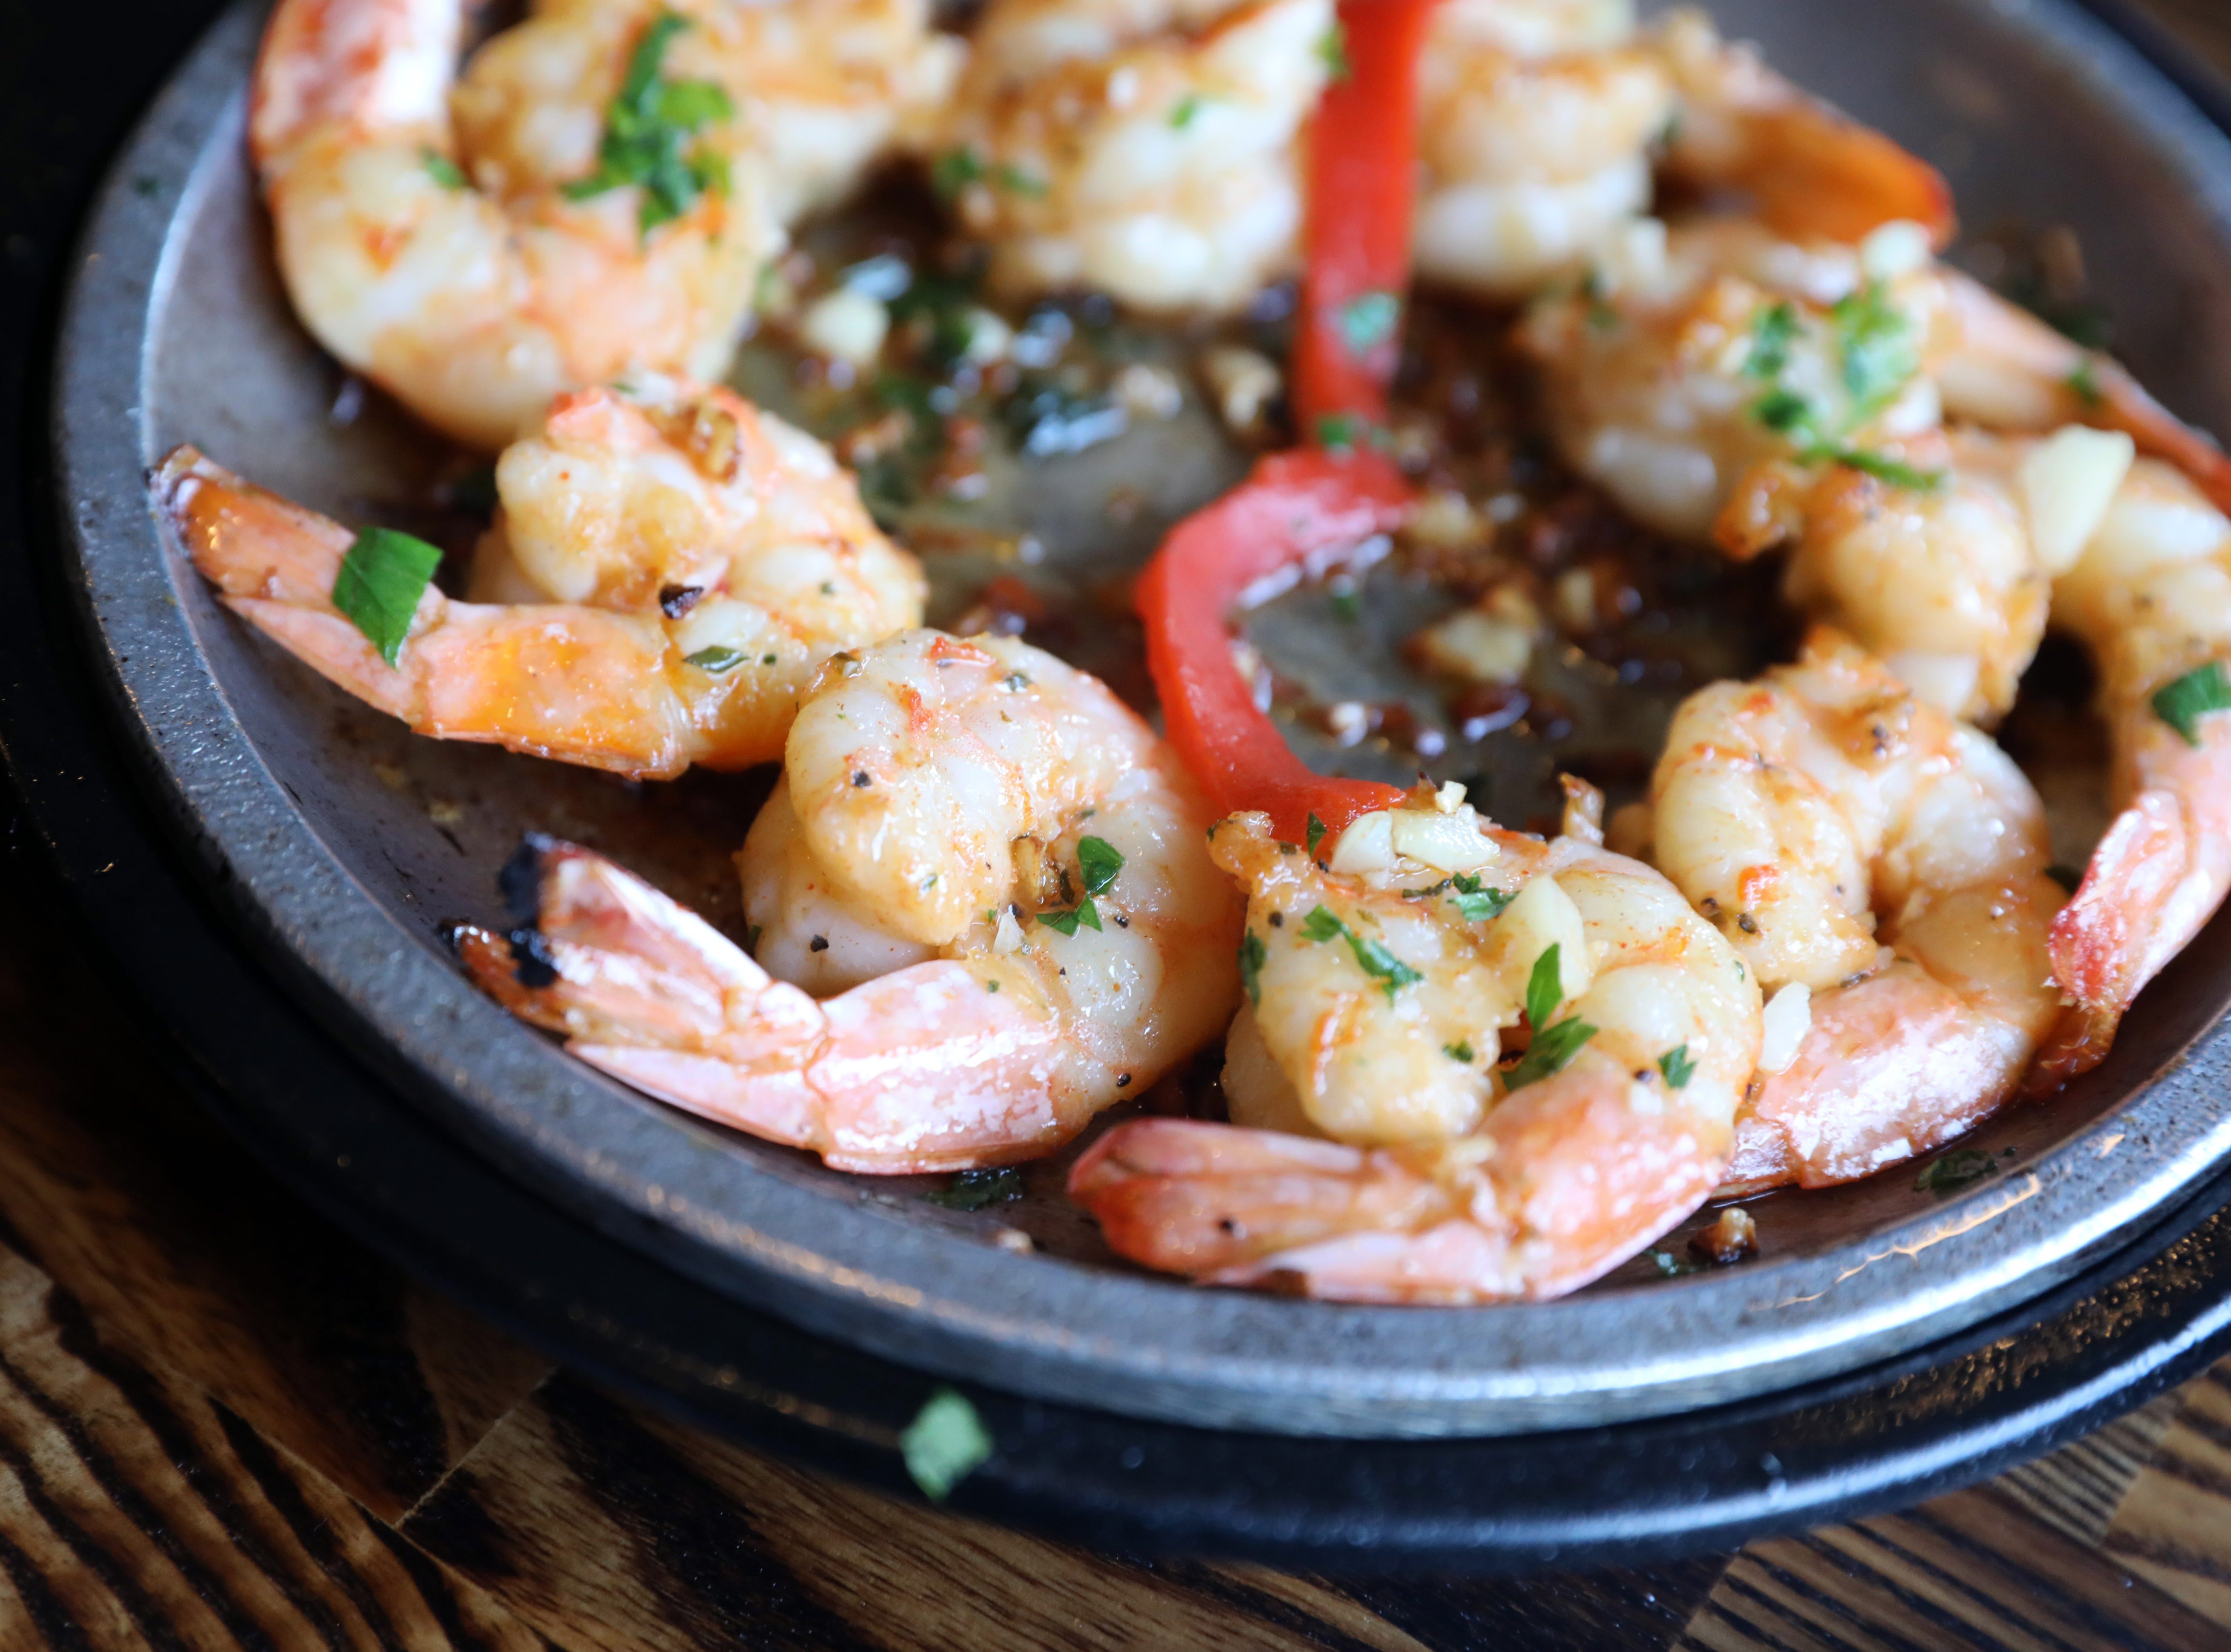 Gambas a la Plancha, Spanish marinated sizzling grilled shrimp at Basque Tapas Bar Restaurant in Piermont Oct. 23, 2018.